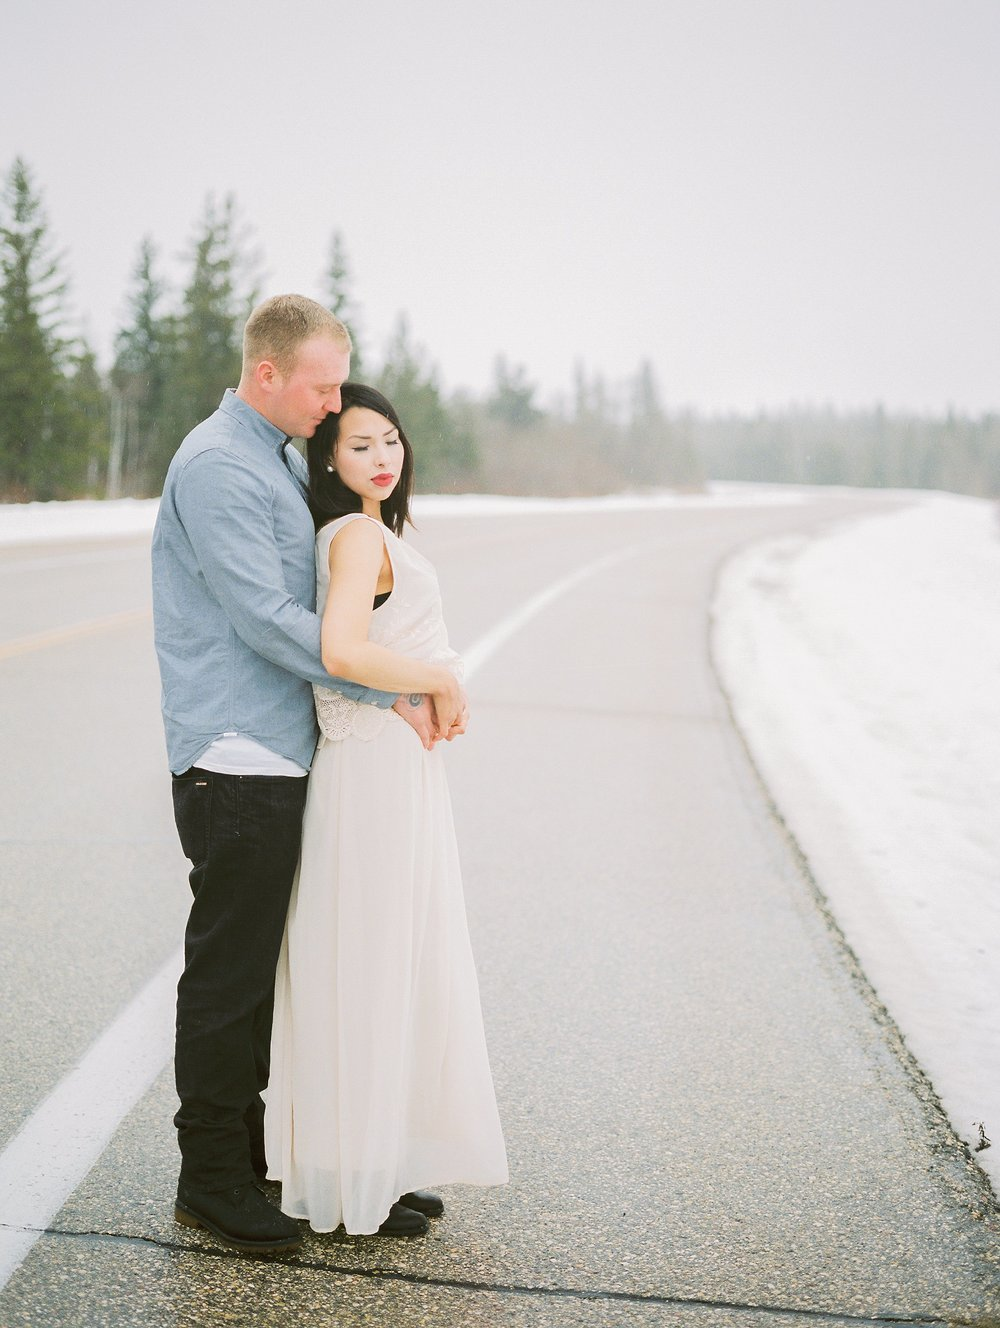 Romantic engagement photos | couples photoshoot poses | Manitoba winter wedding | photographed by Keila Marie Photography